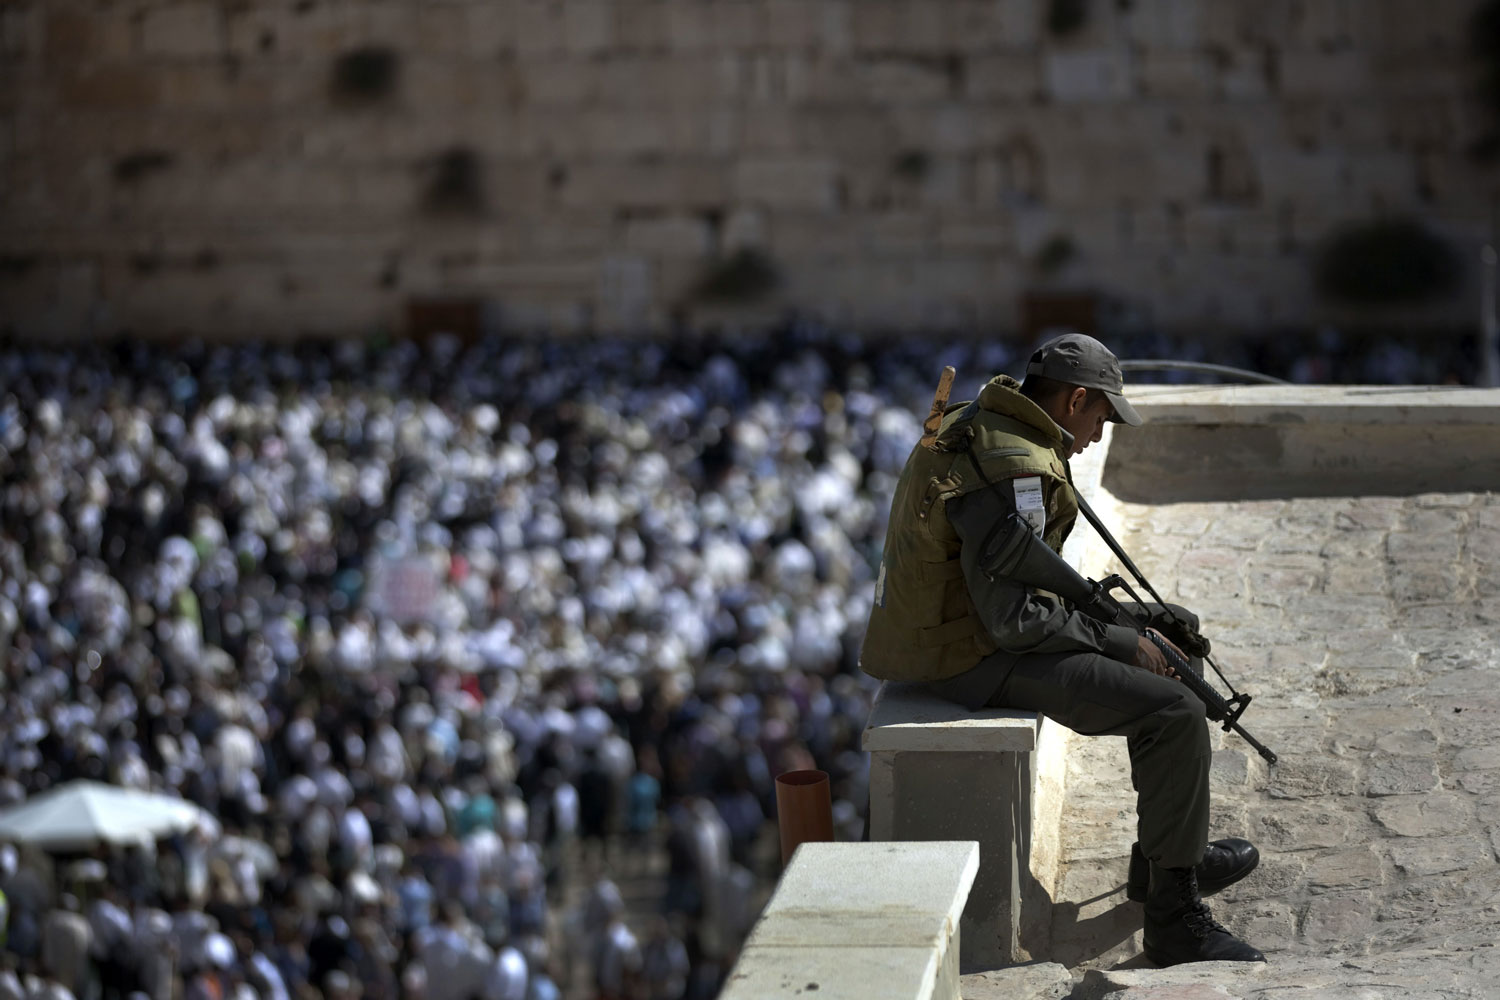 October 16, 2011. An Israeli border guard secures the areas as thousands of Jewish men and women participate in a mass Cohanim prayer (priest's blessing) during the annual pilgrimage festival of Sukkot, or the feast of the Tabernacles, at the Western Wall in Jerusalem's Old City. Thousands of Jews make the week-long pilgrimage to Jerusalem during the holiday which commemorates the desert wanderings of the Israelites after their exodus from Egypt.